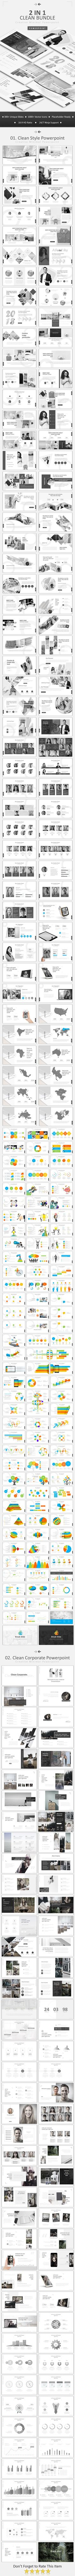 2 in 1 Clean Bundle Powerpoint - Business PowerPoint Templates Presentation Styles, Presentation Templates, Business Powerpoint Templates, My Design, Fonts, Design Inspiration, Layout, Graphics, Content